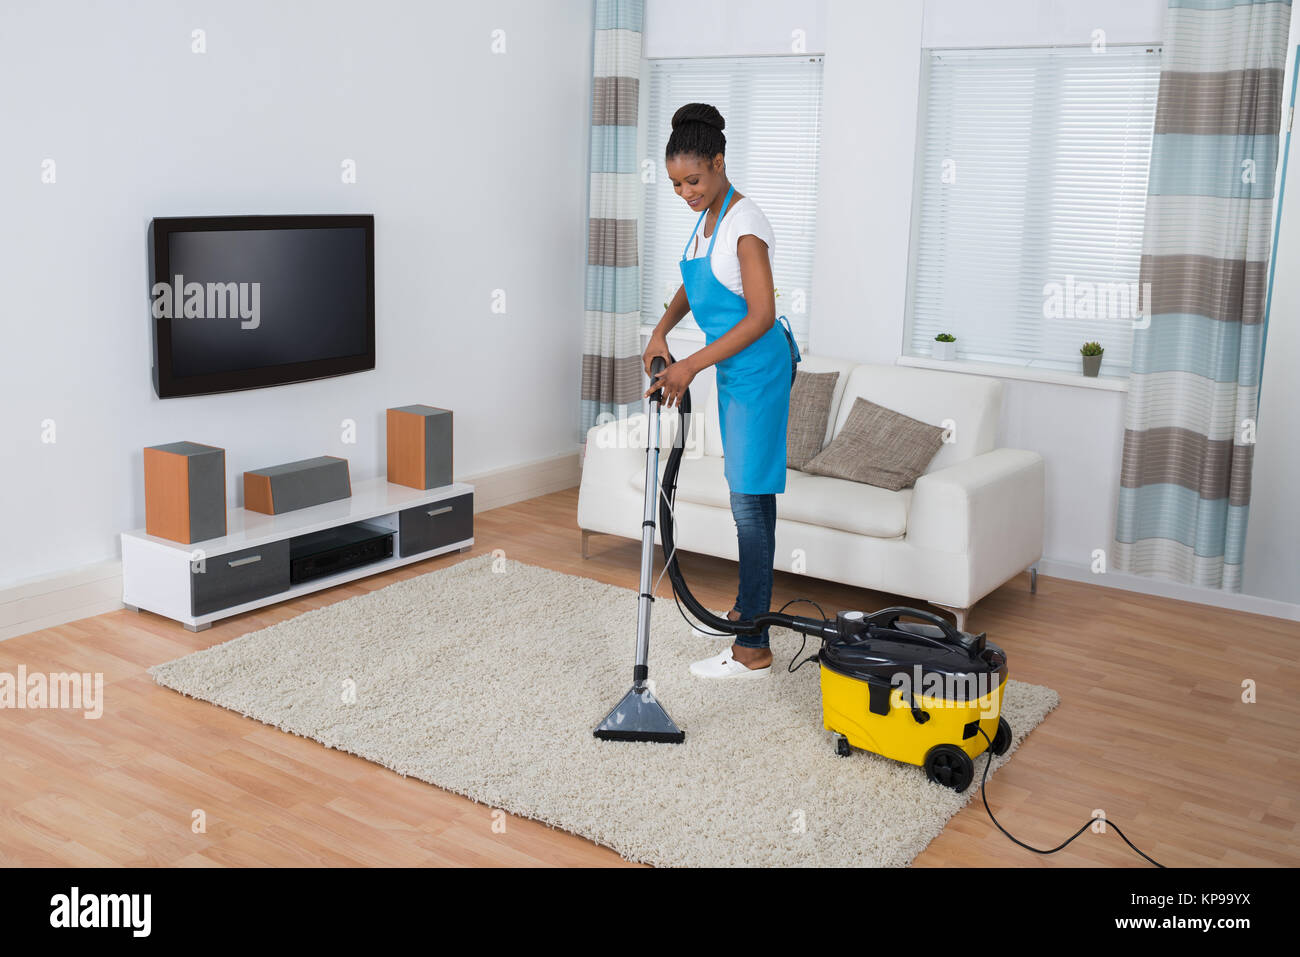 Woman Cleaning Carpet With Vacuum Cleaner - Stock Image